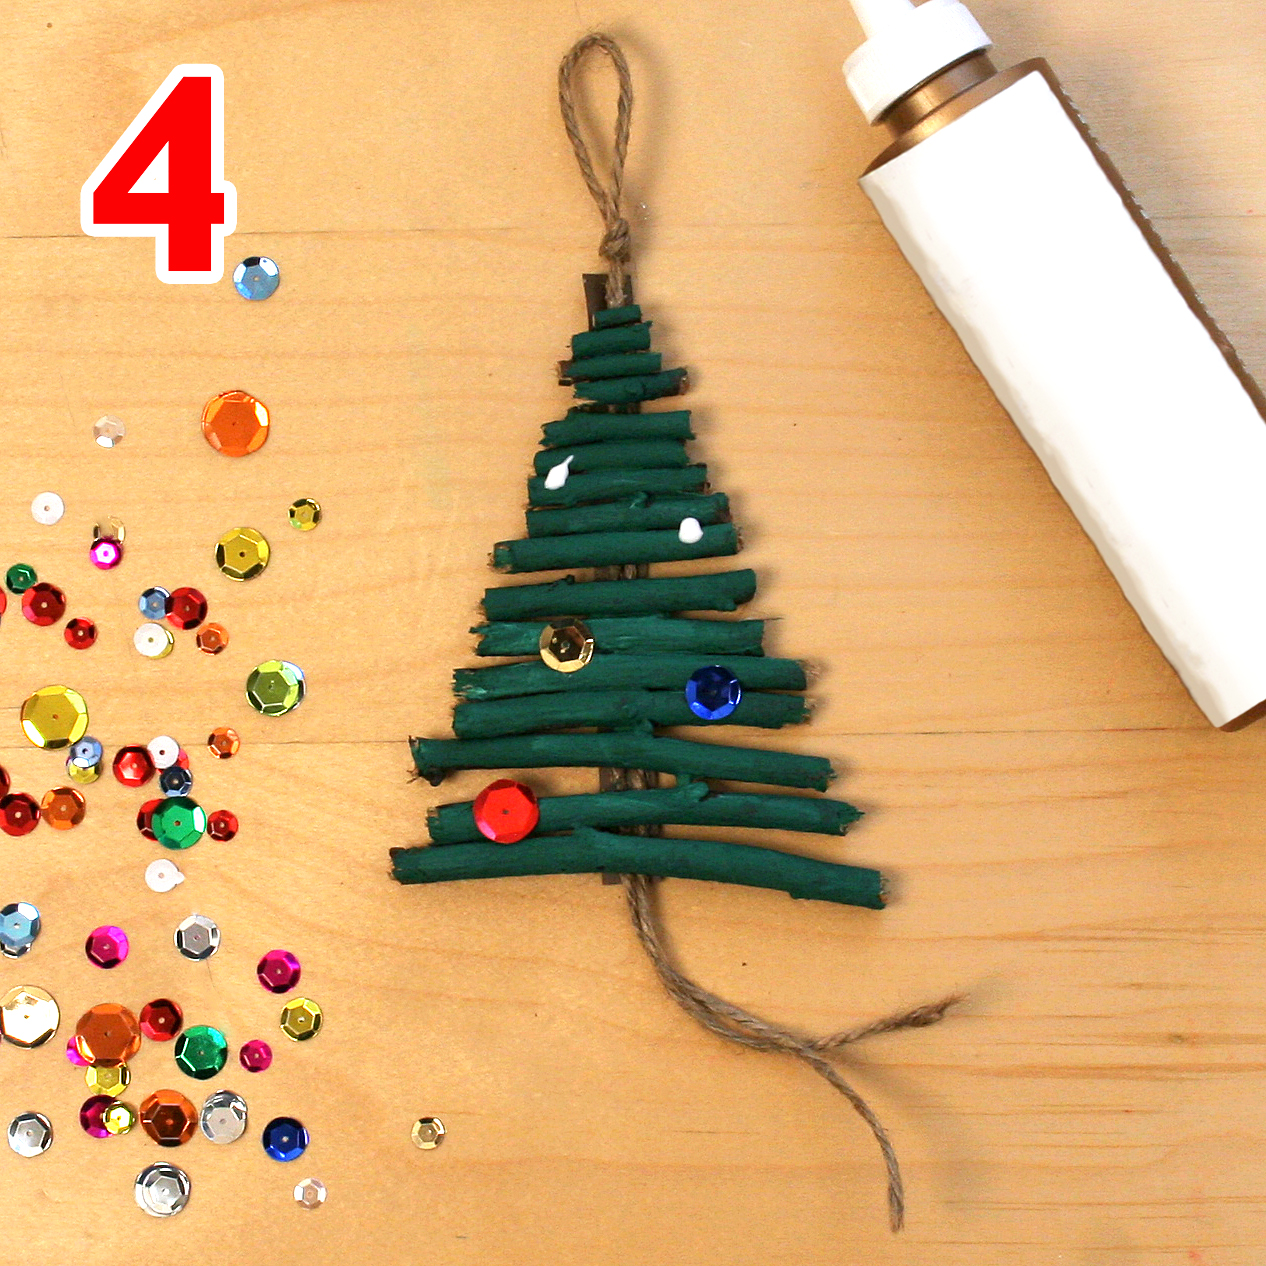 Christmas tree ornament craft step 4